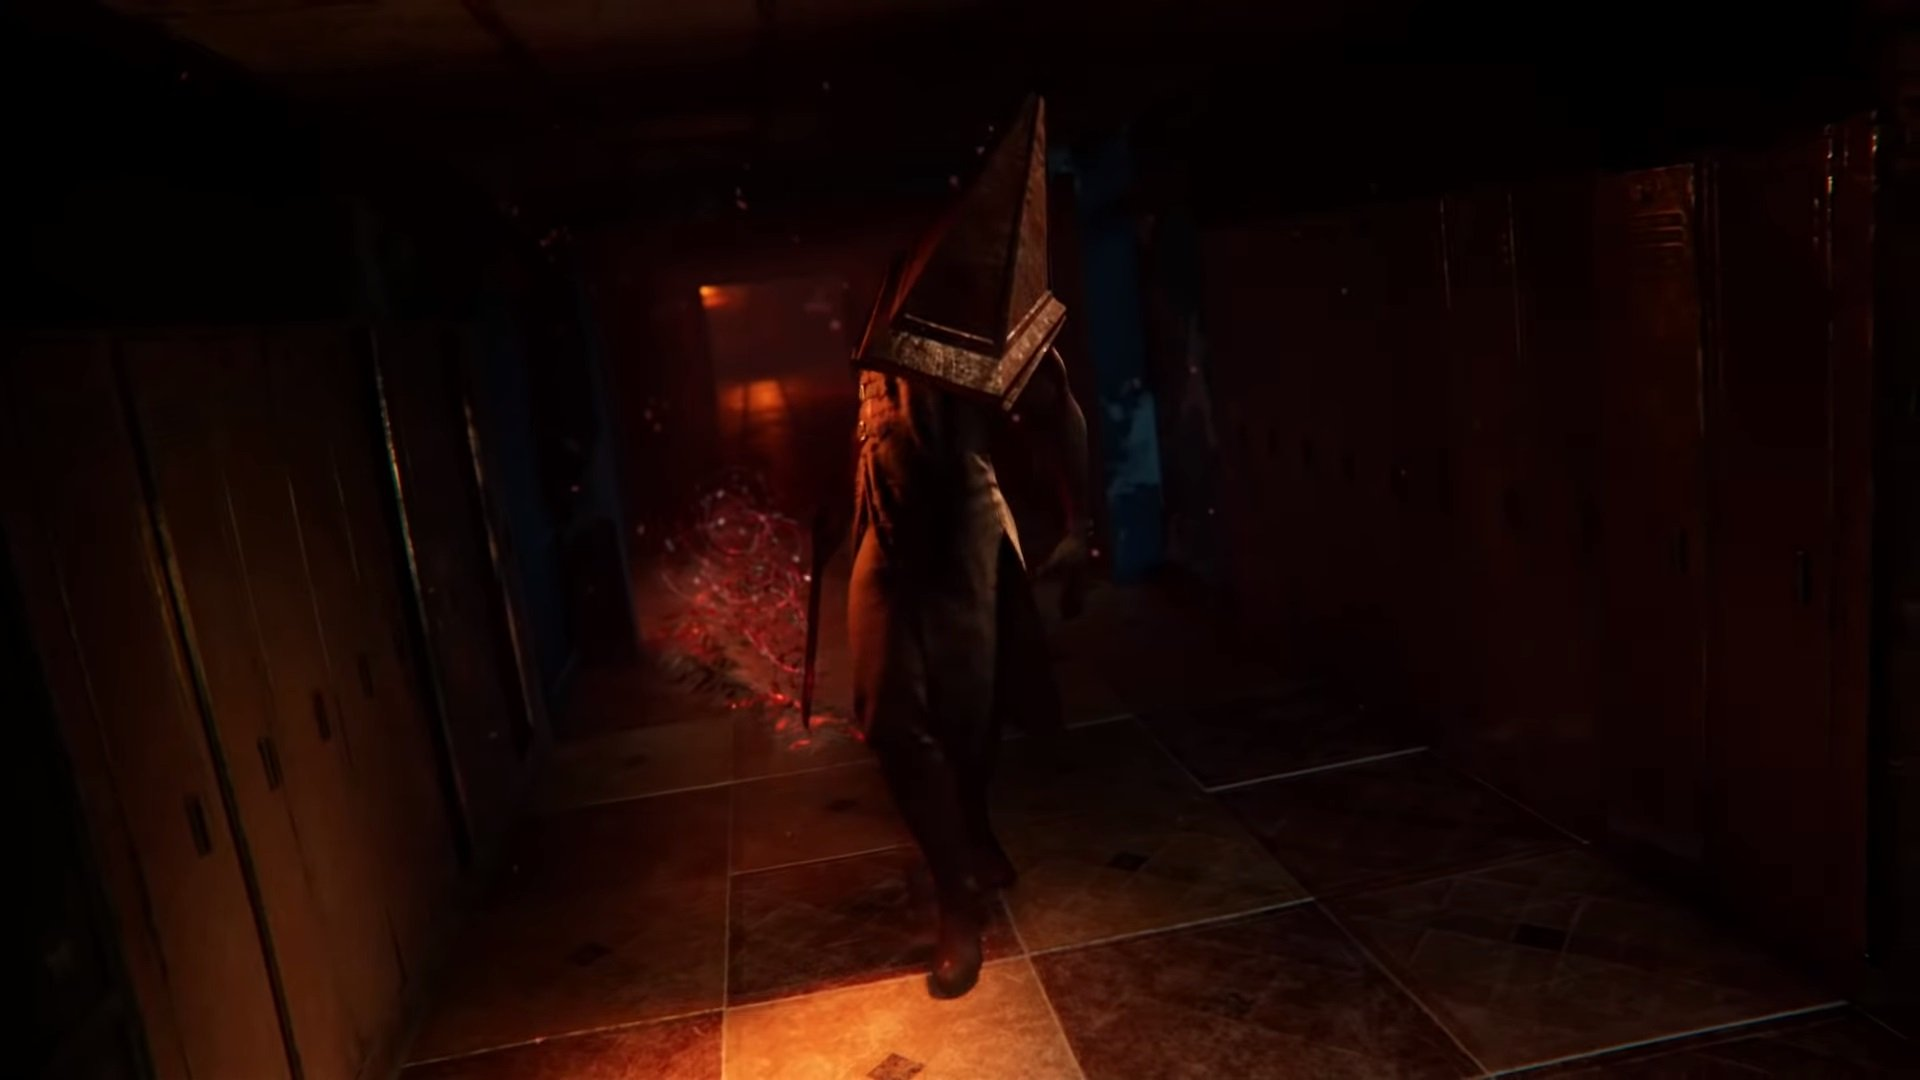 Dead by Daylight's next expansion is all about Silent Hill